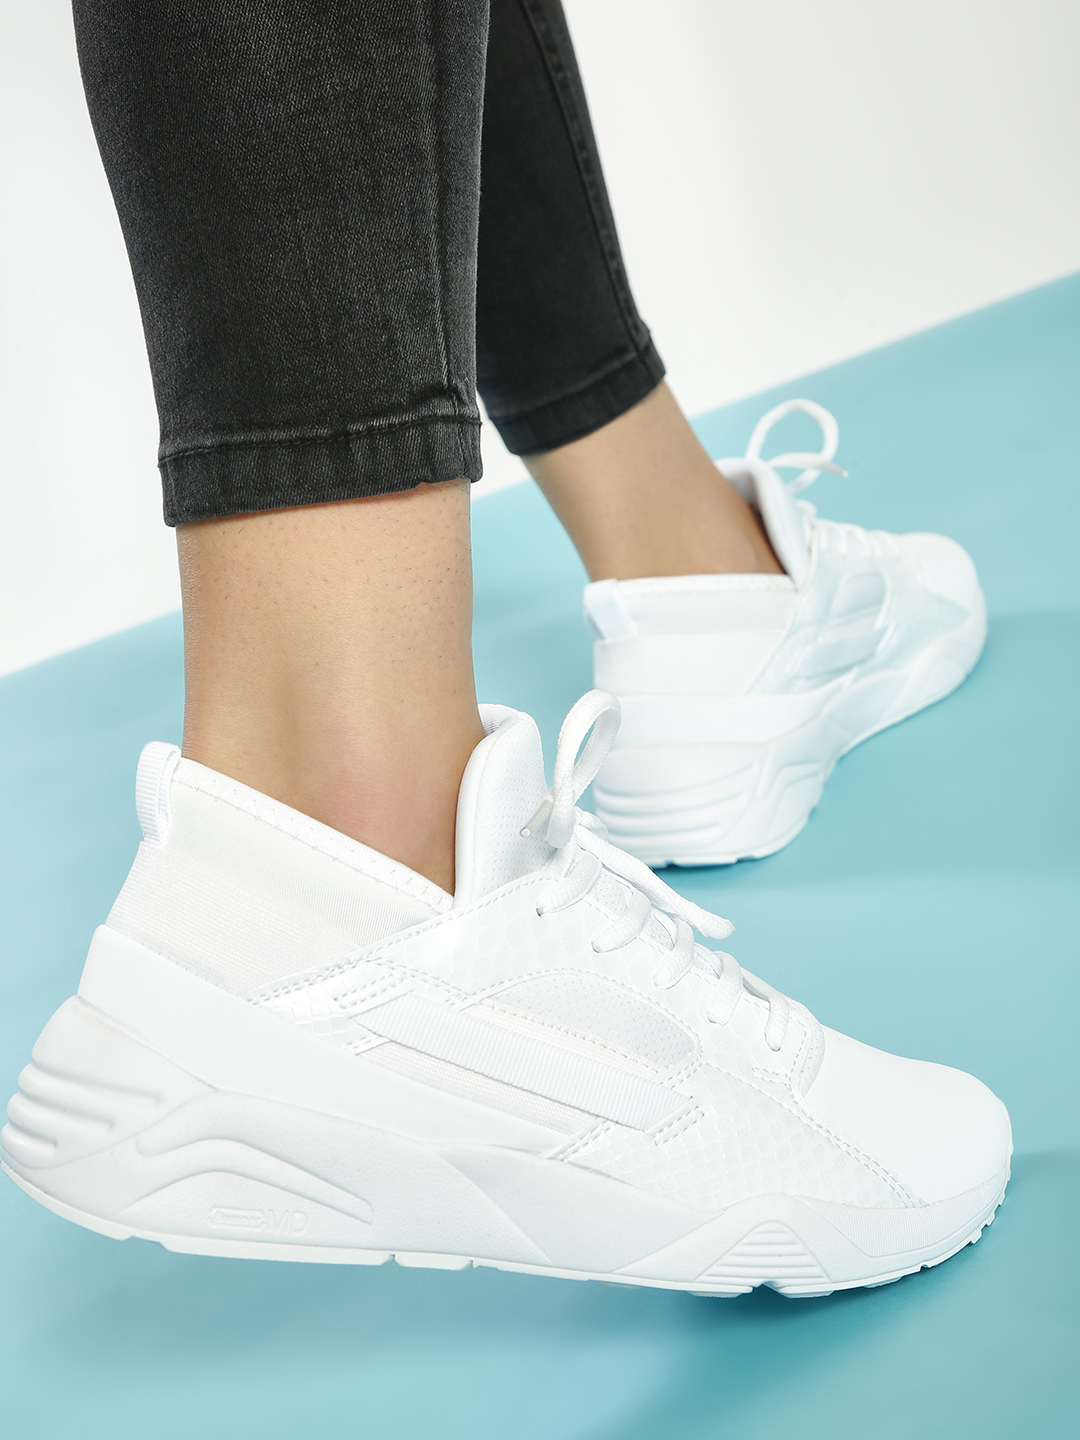 361 Degree White Crocskin Panelled Shoes 1